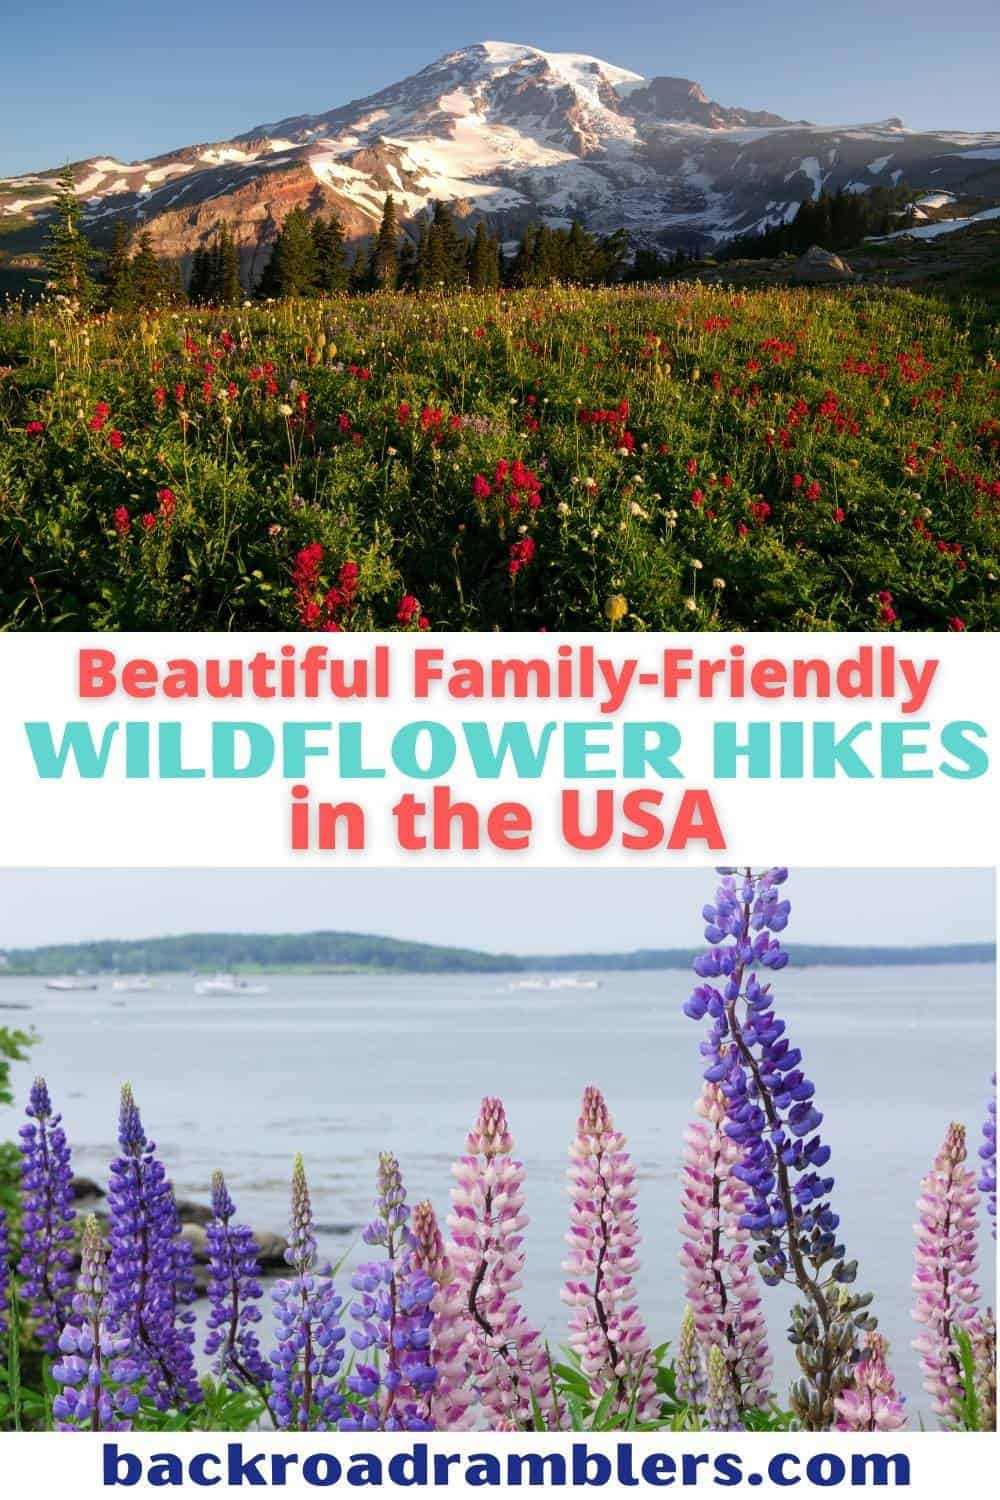 Two photos featuring wildflower hikes in the United States. Text overlay: Beautiful, family-friendly wildflower hikes in the USA.